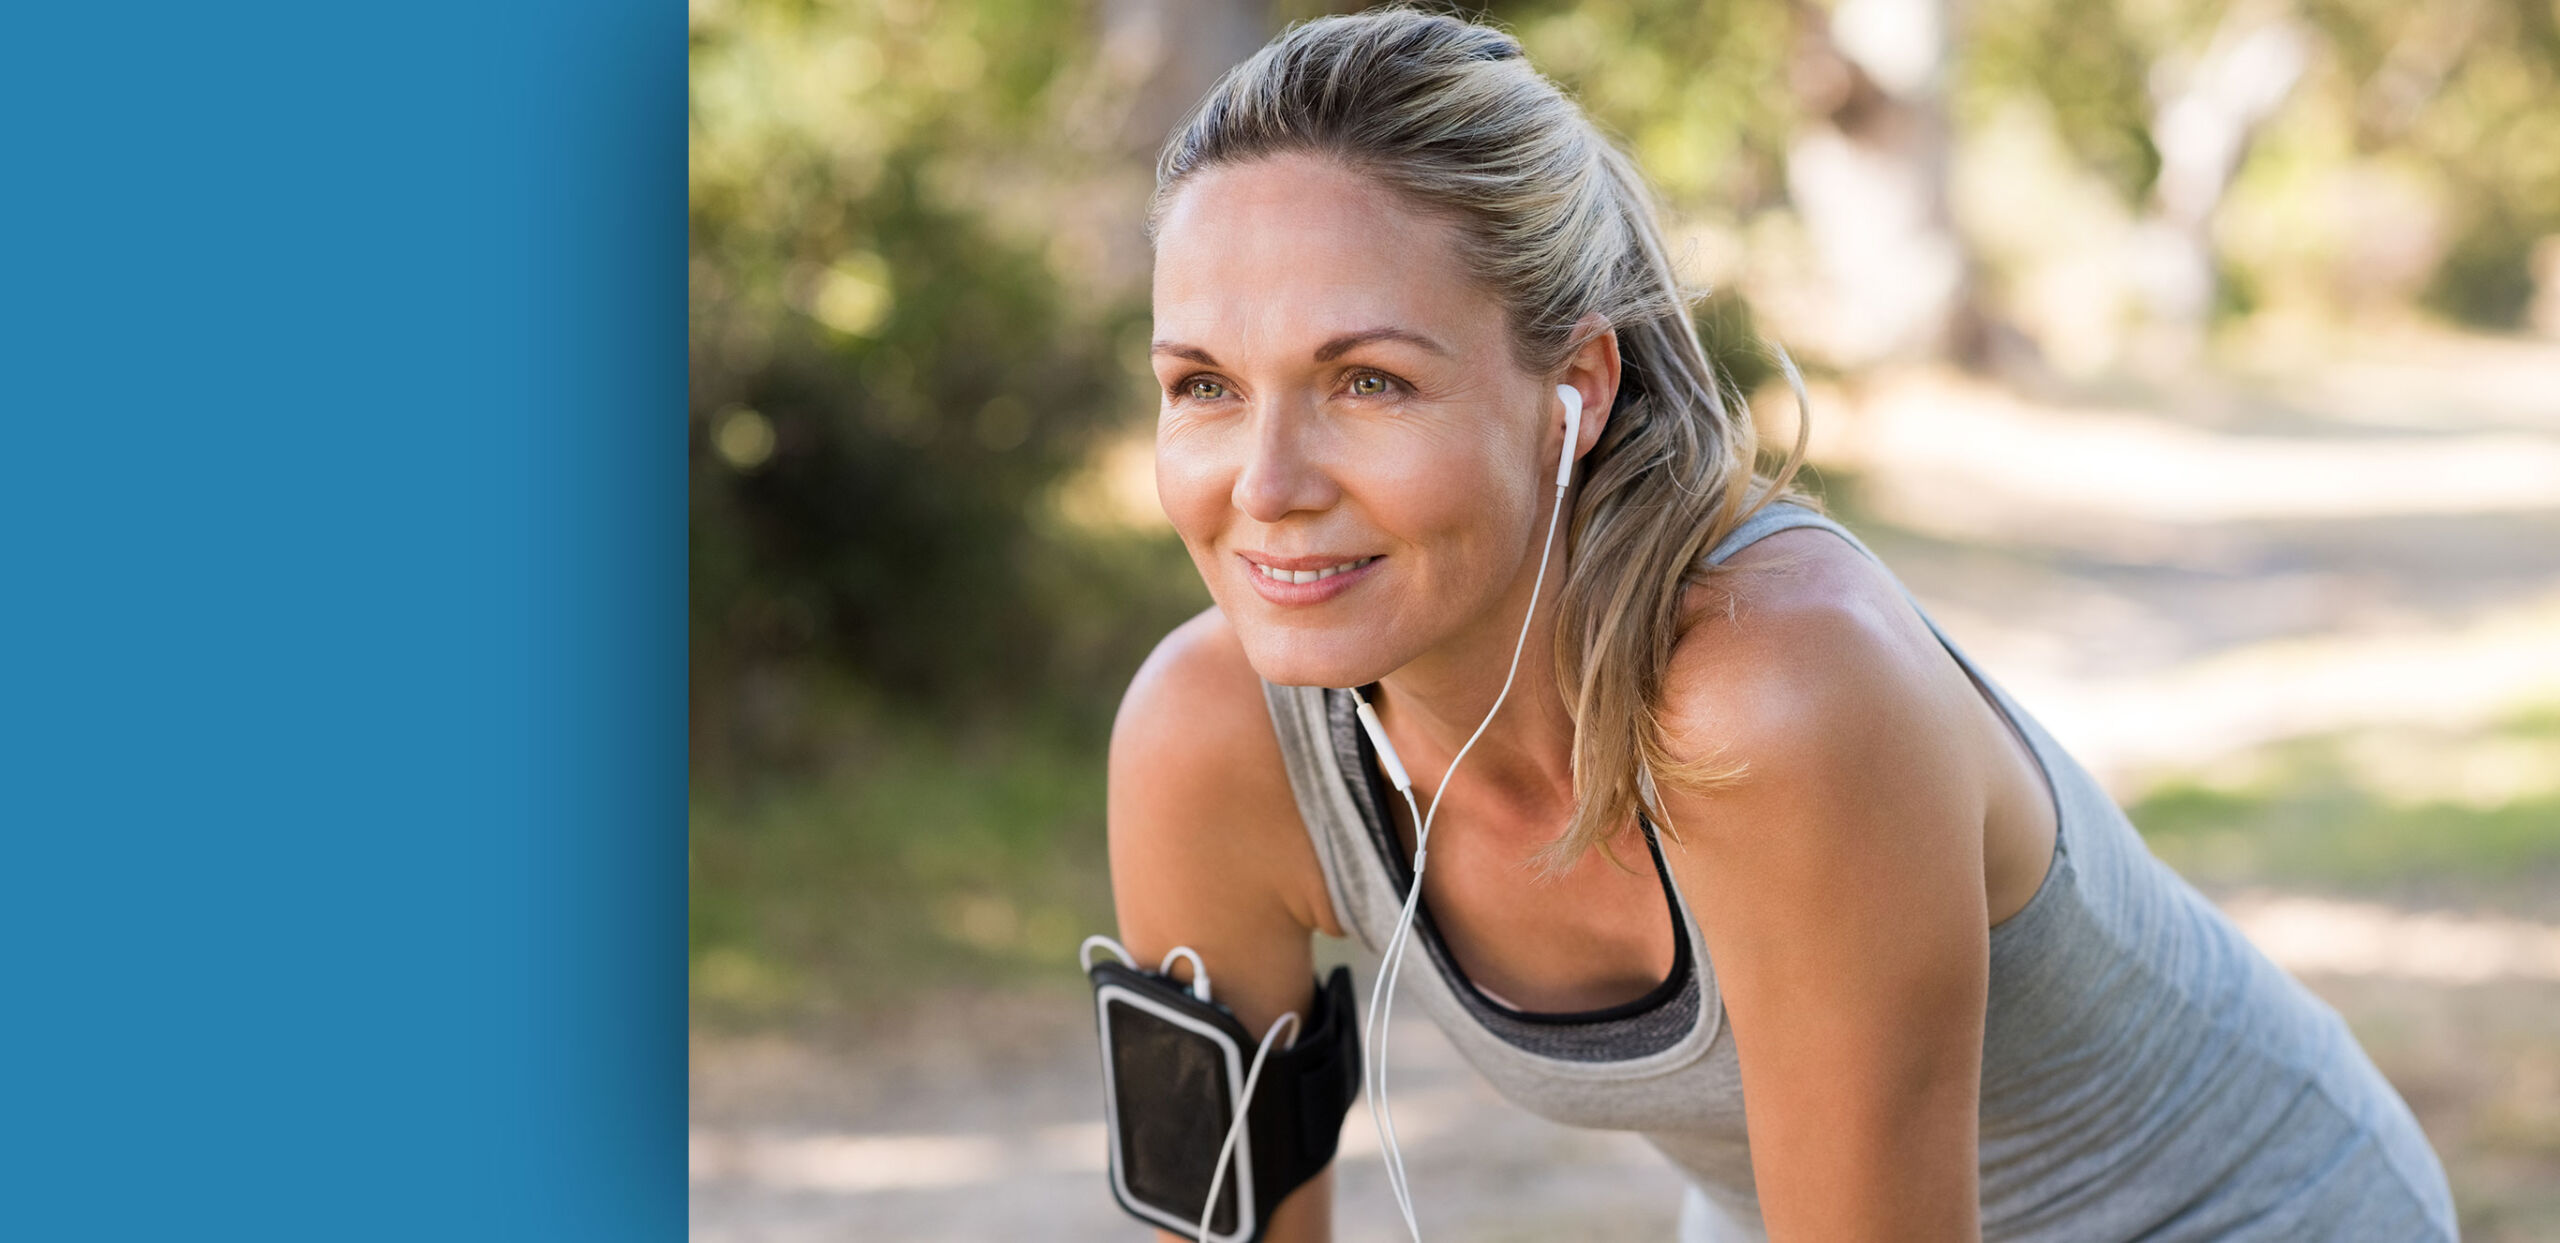 Cosmetic injectables at Cooley Dickinson Medical Group Plastic Surgery, Florence, MA 01062.